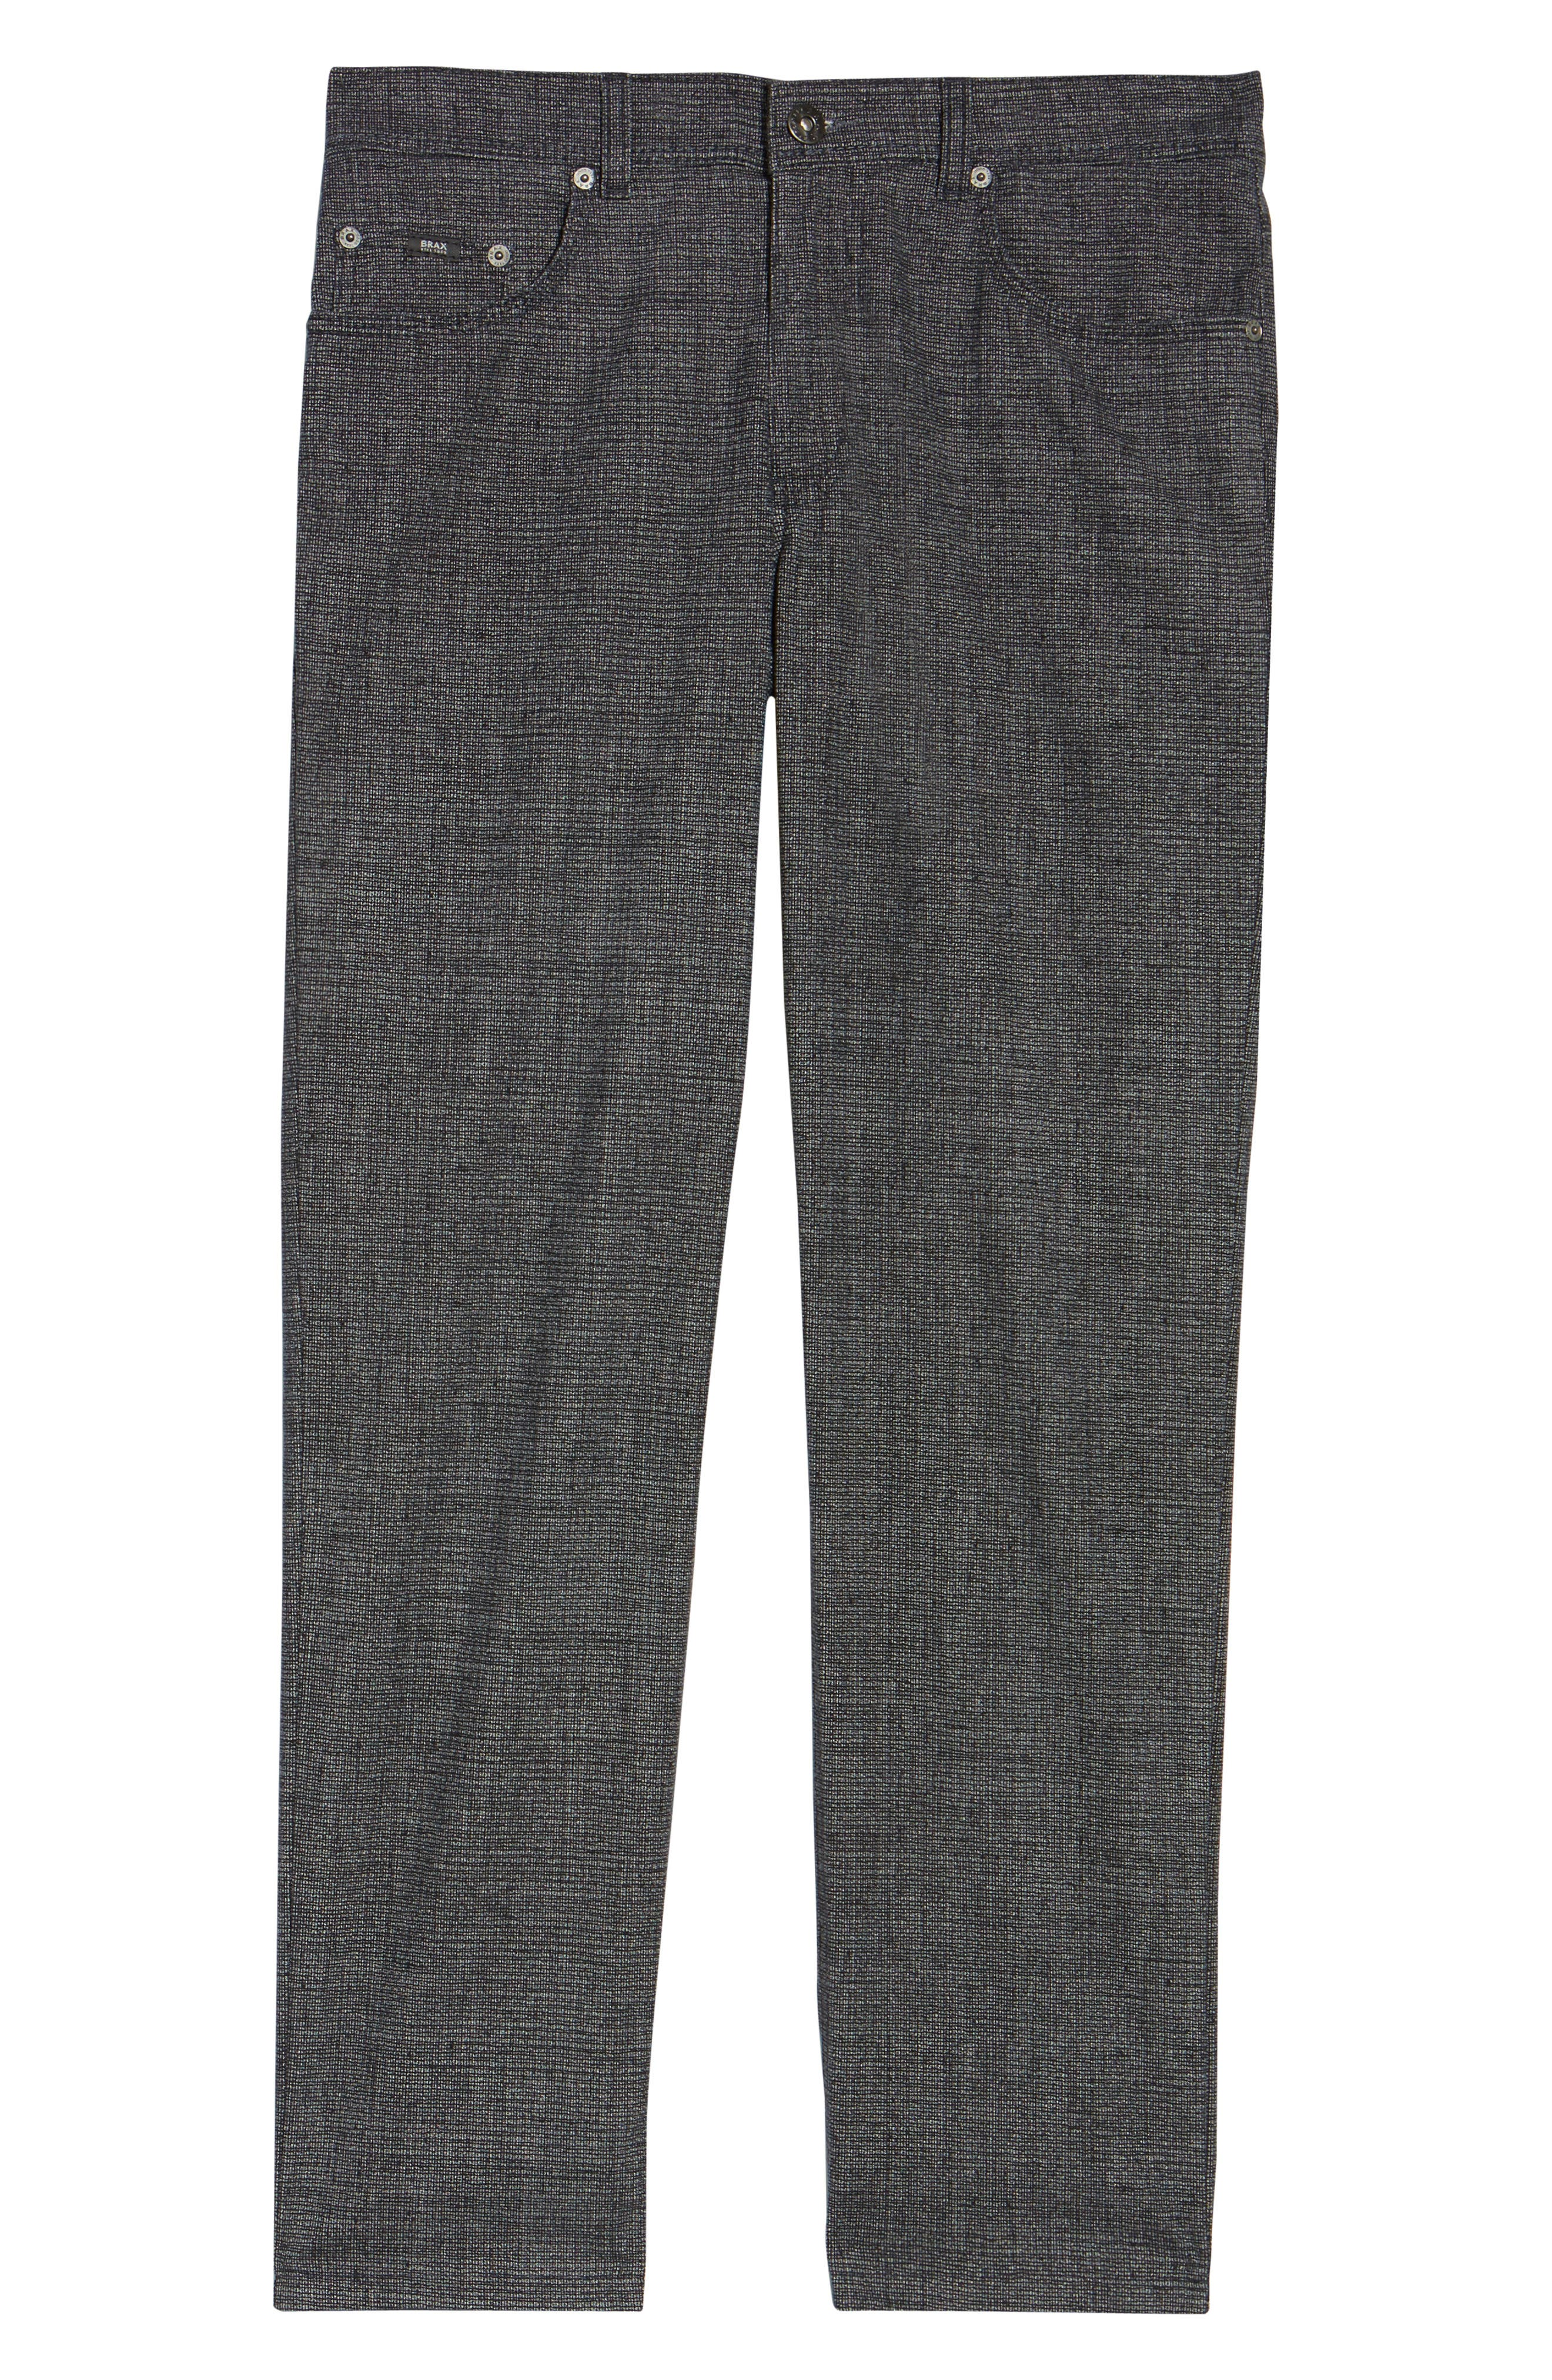 Cotton Blend Five-Pocket Trousers,                             Alternate thumbnail 6, color,                             Midnight